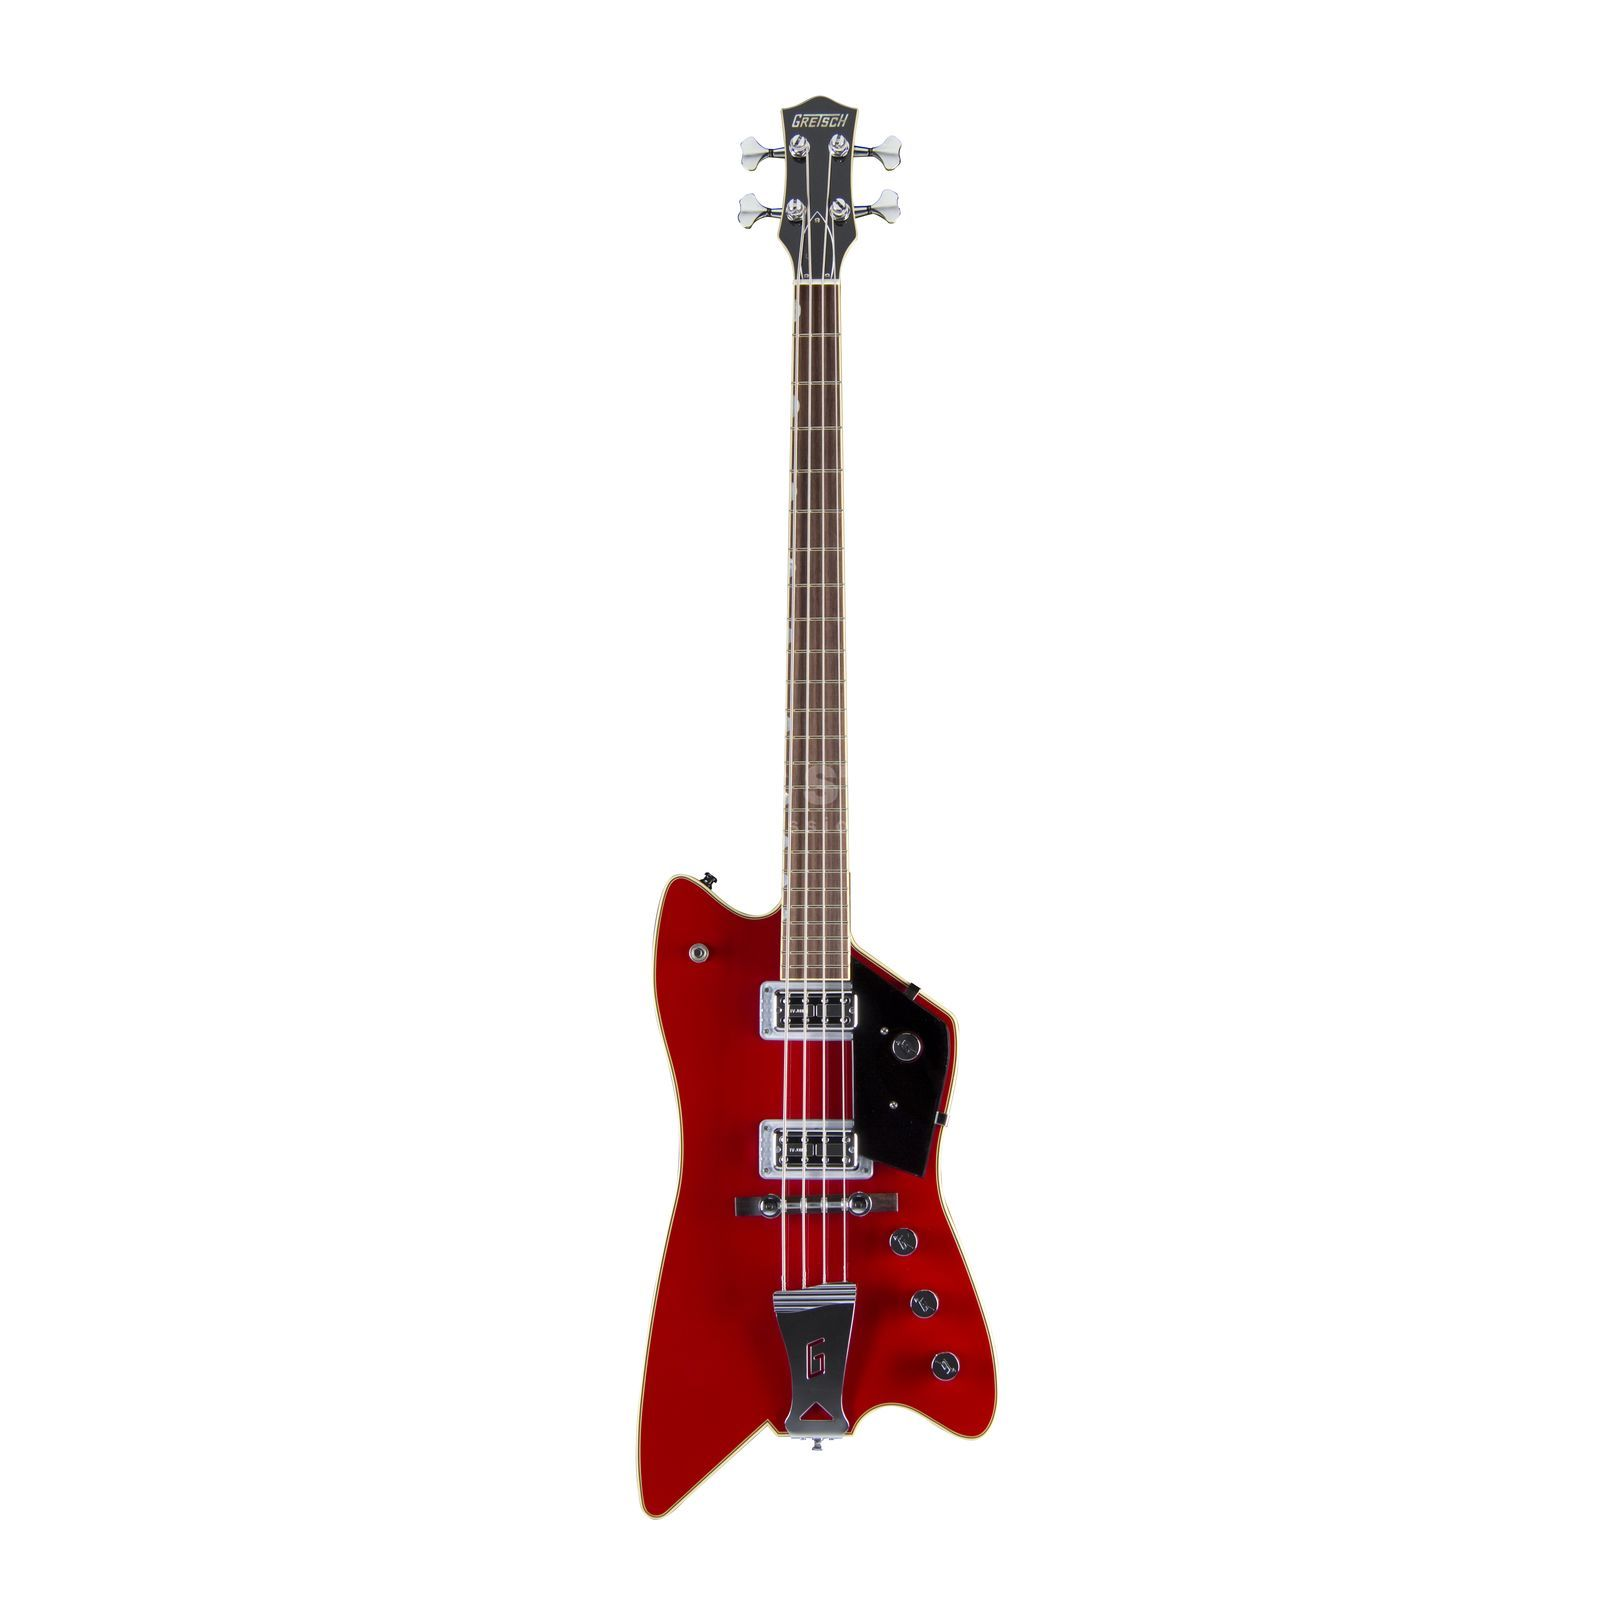 Gretsch G6199B Billy-Bo Jupiter Thunderbird Bass Firebird Red Image du produit